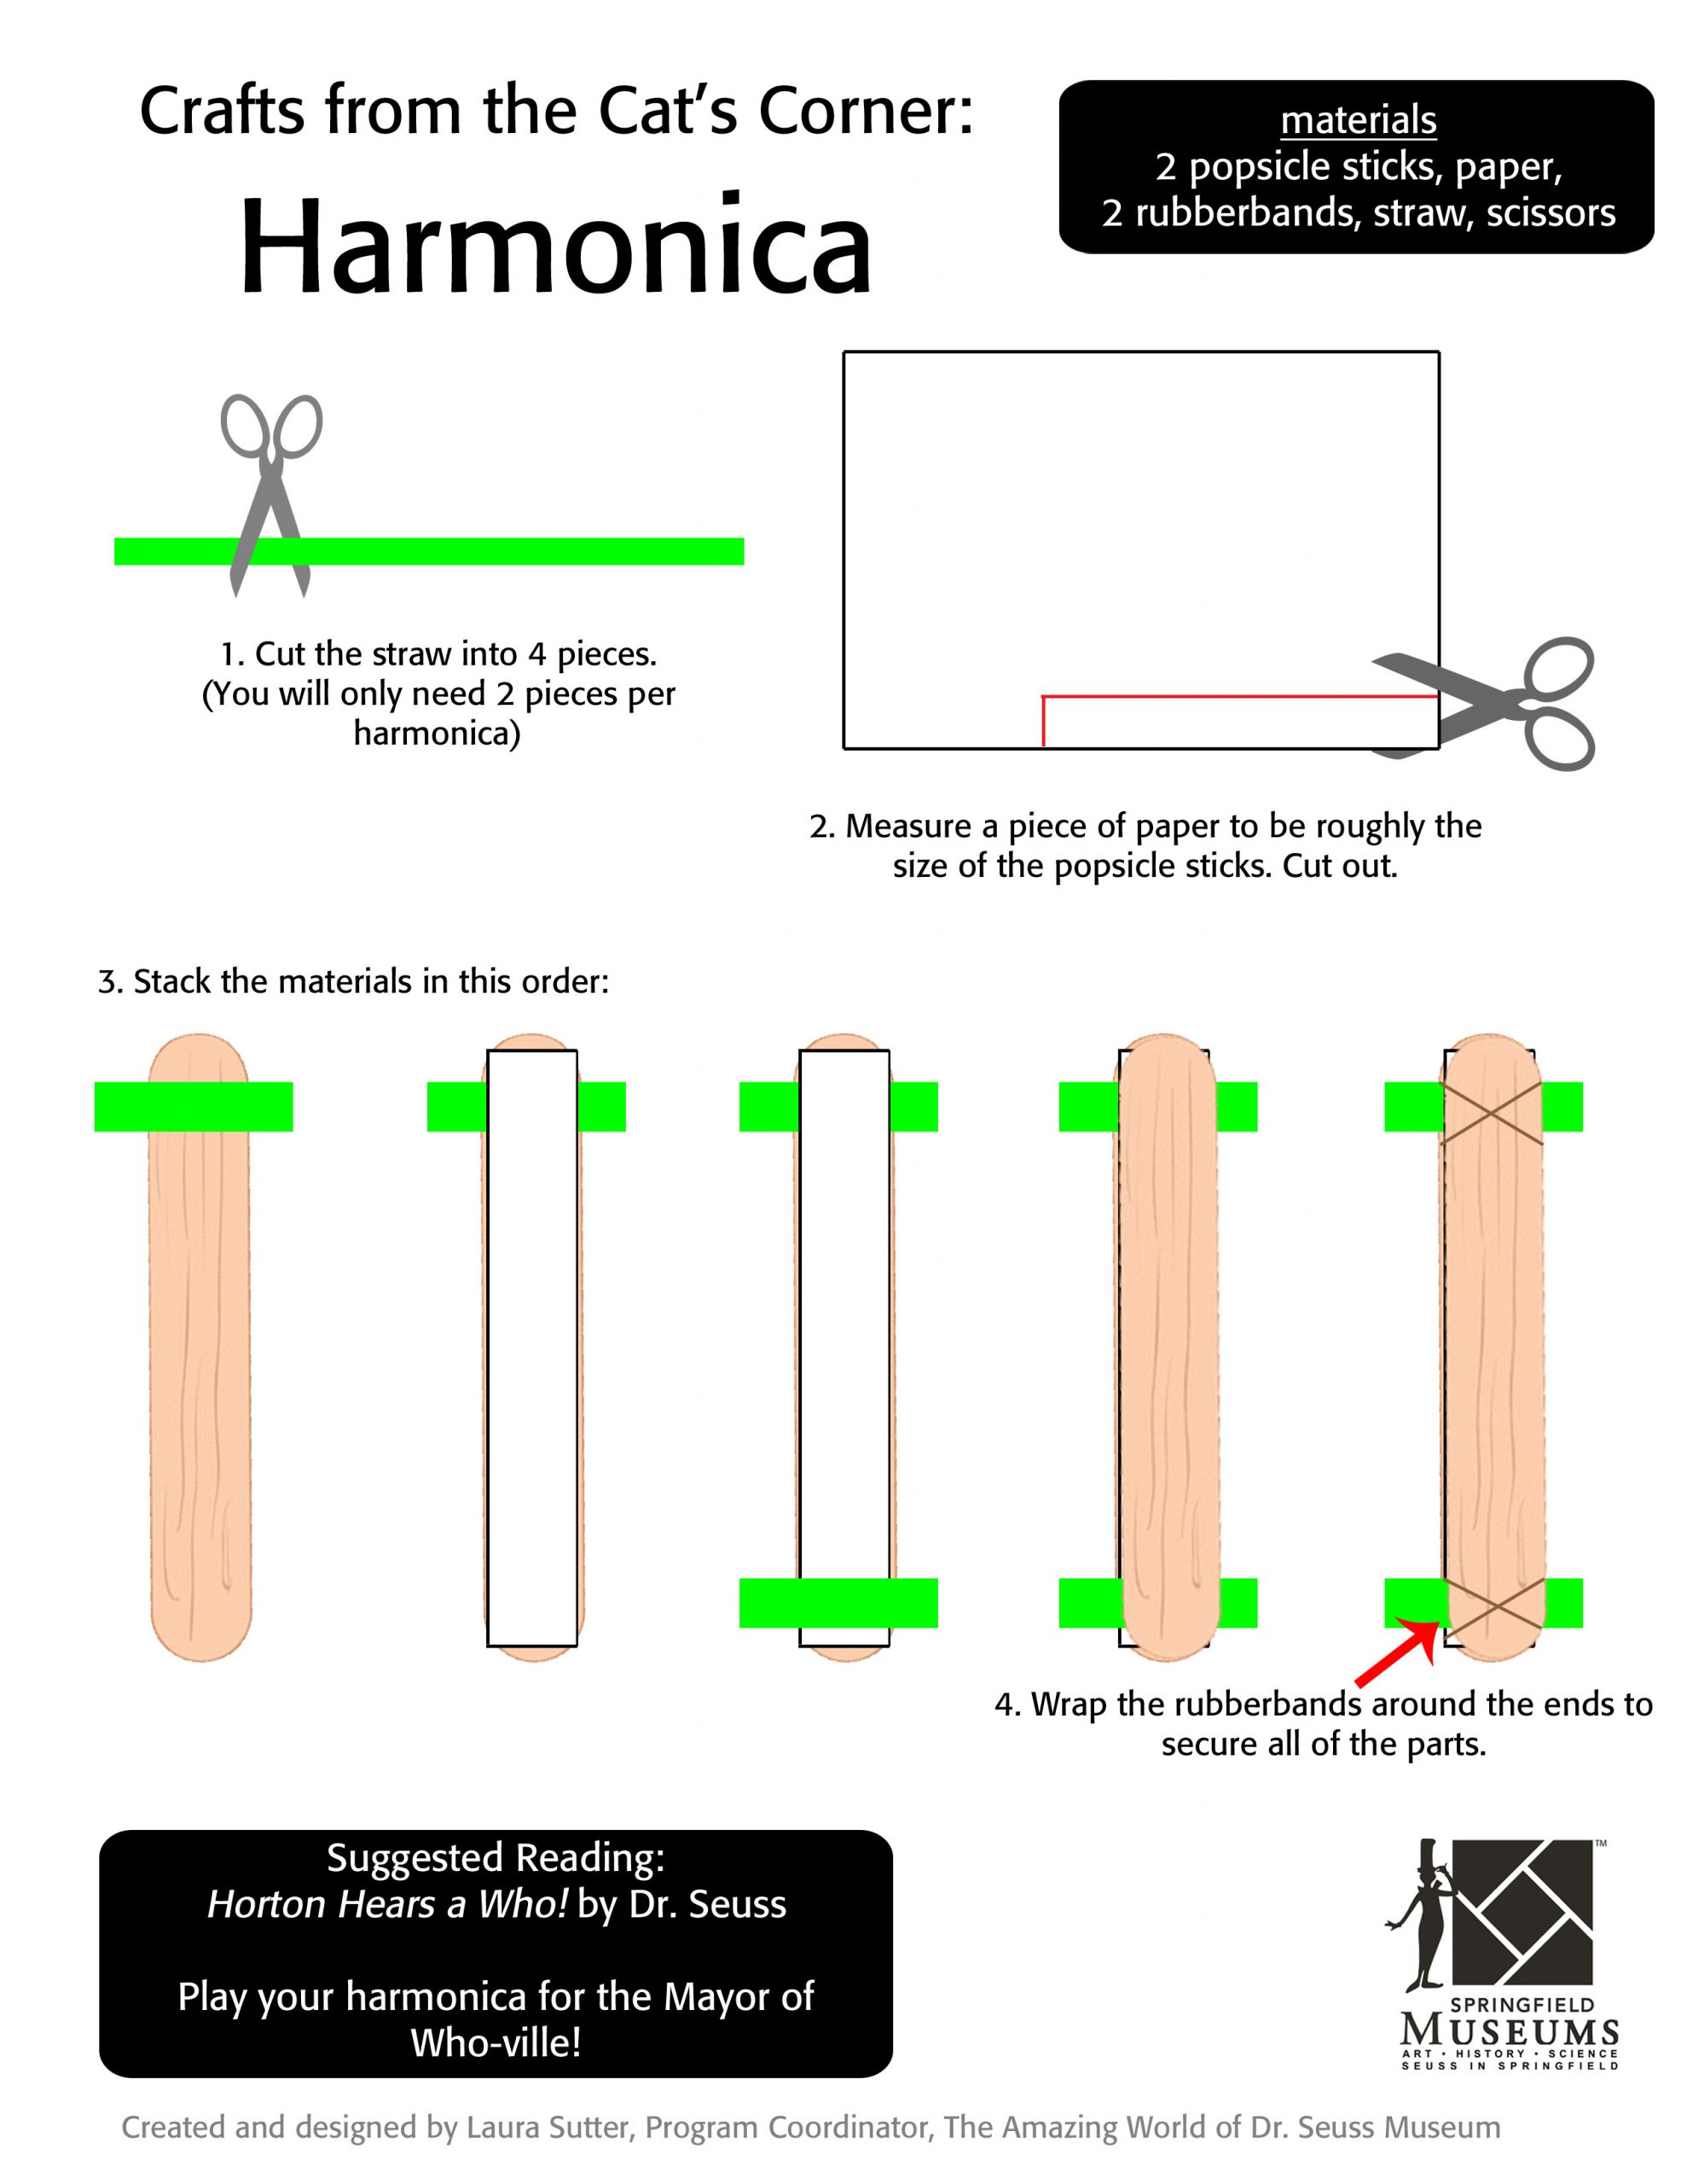 Crafts from the Cat's Corner: Harmonica